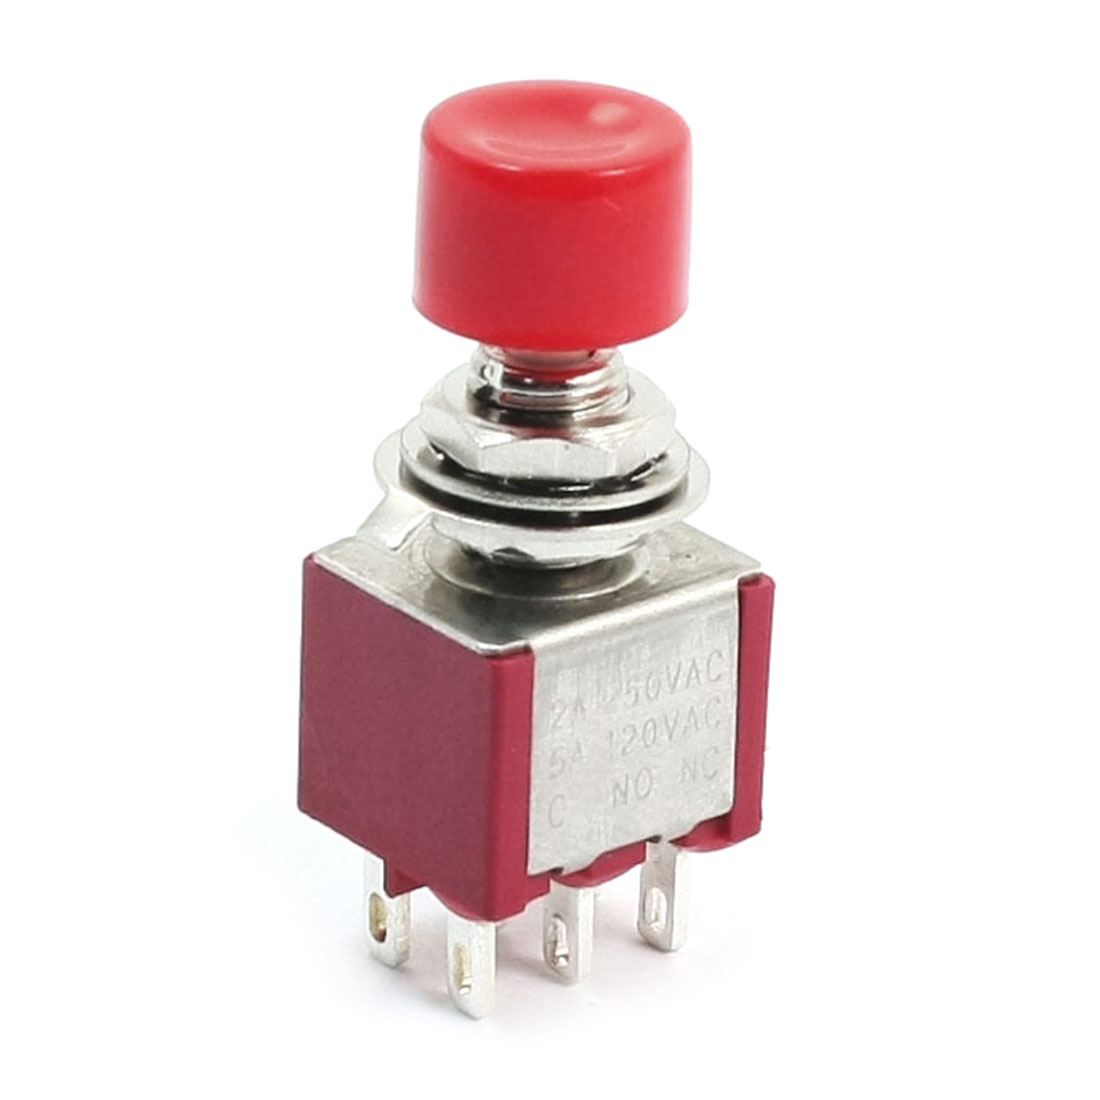 PS821M1 Momentary Red Push Button Switch DPDT AC250V 2A 120V 5A